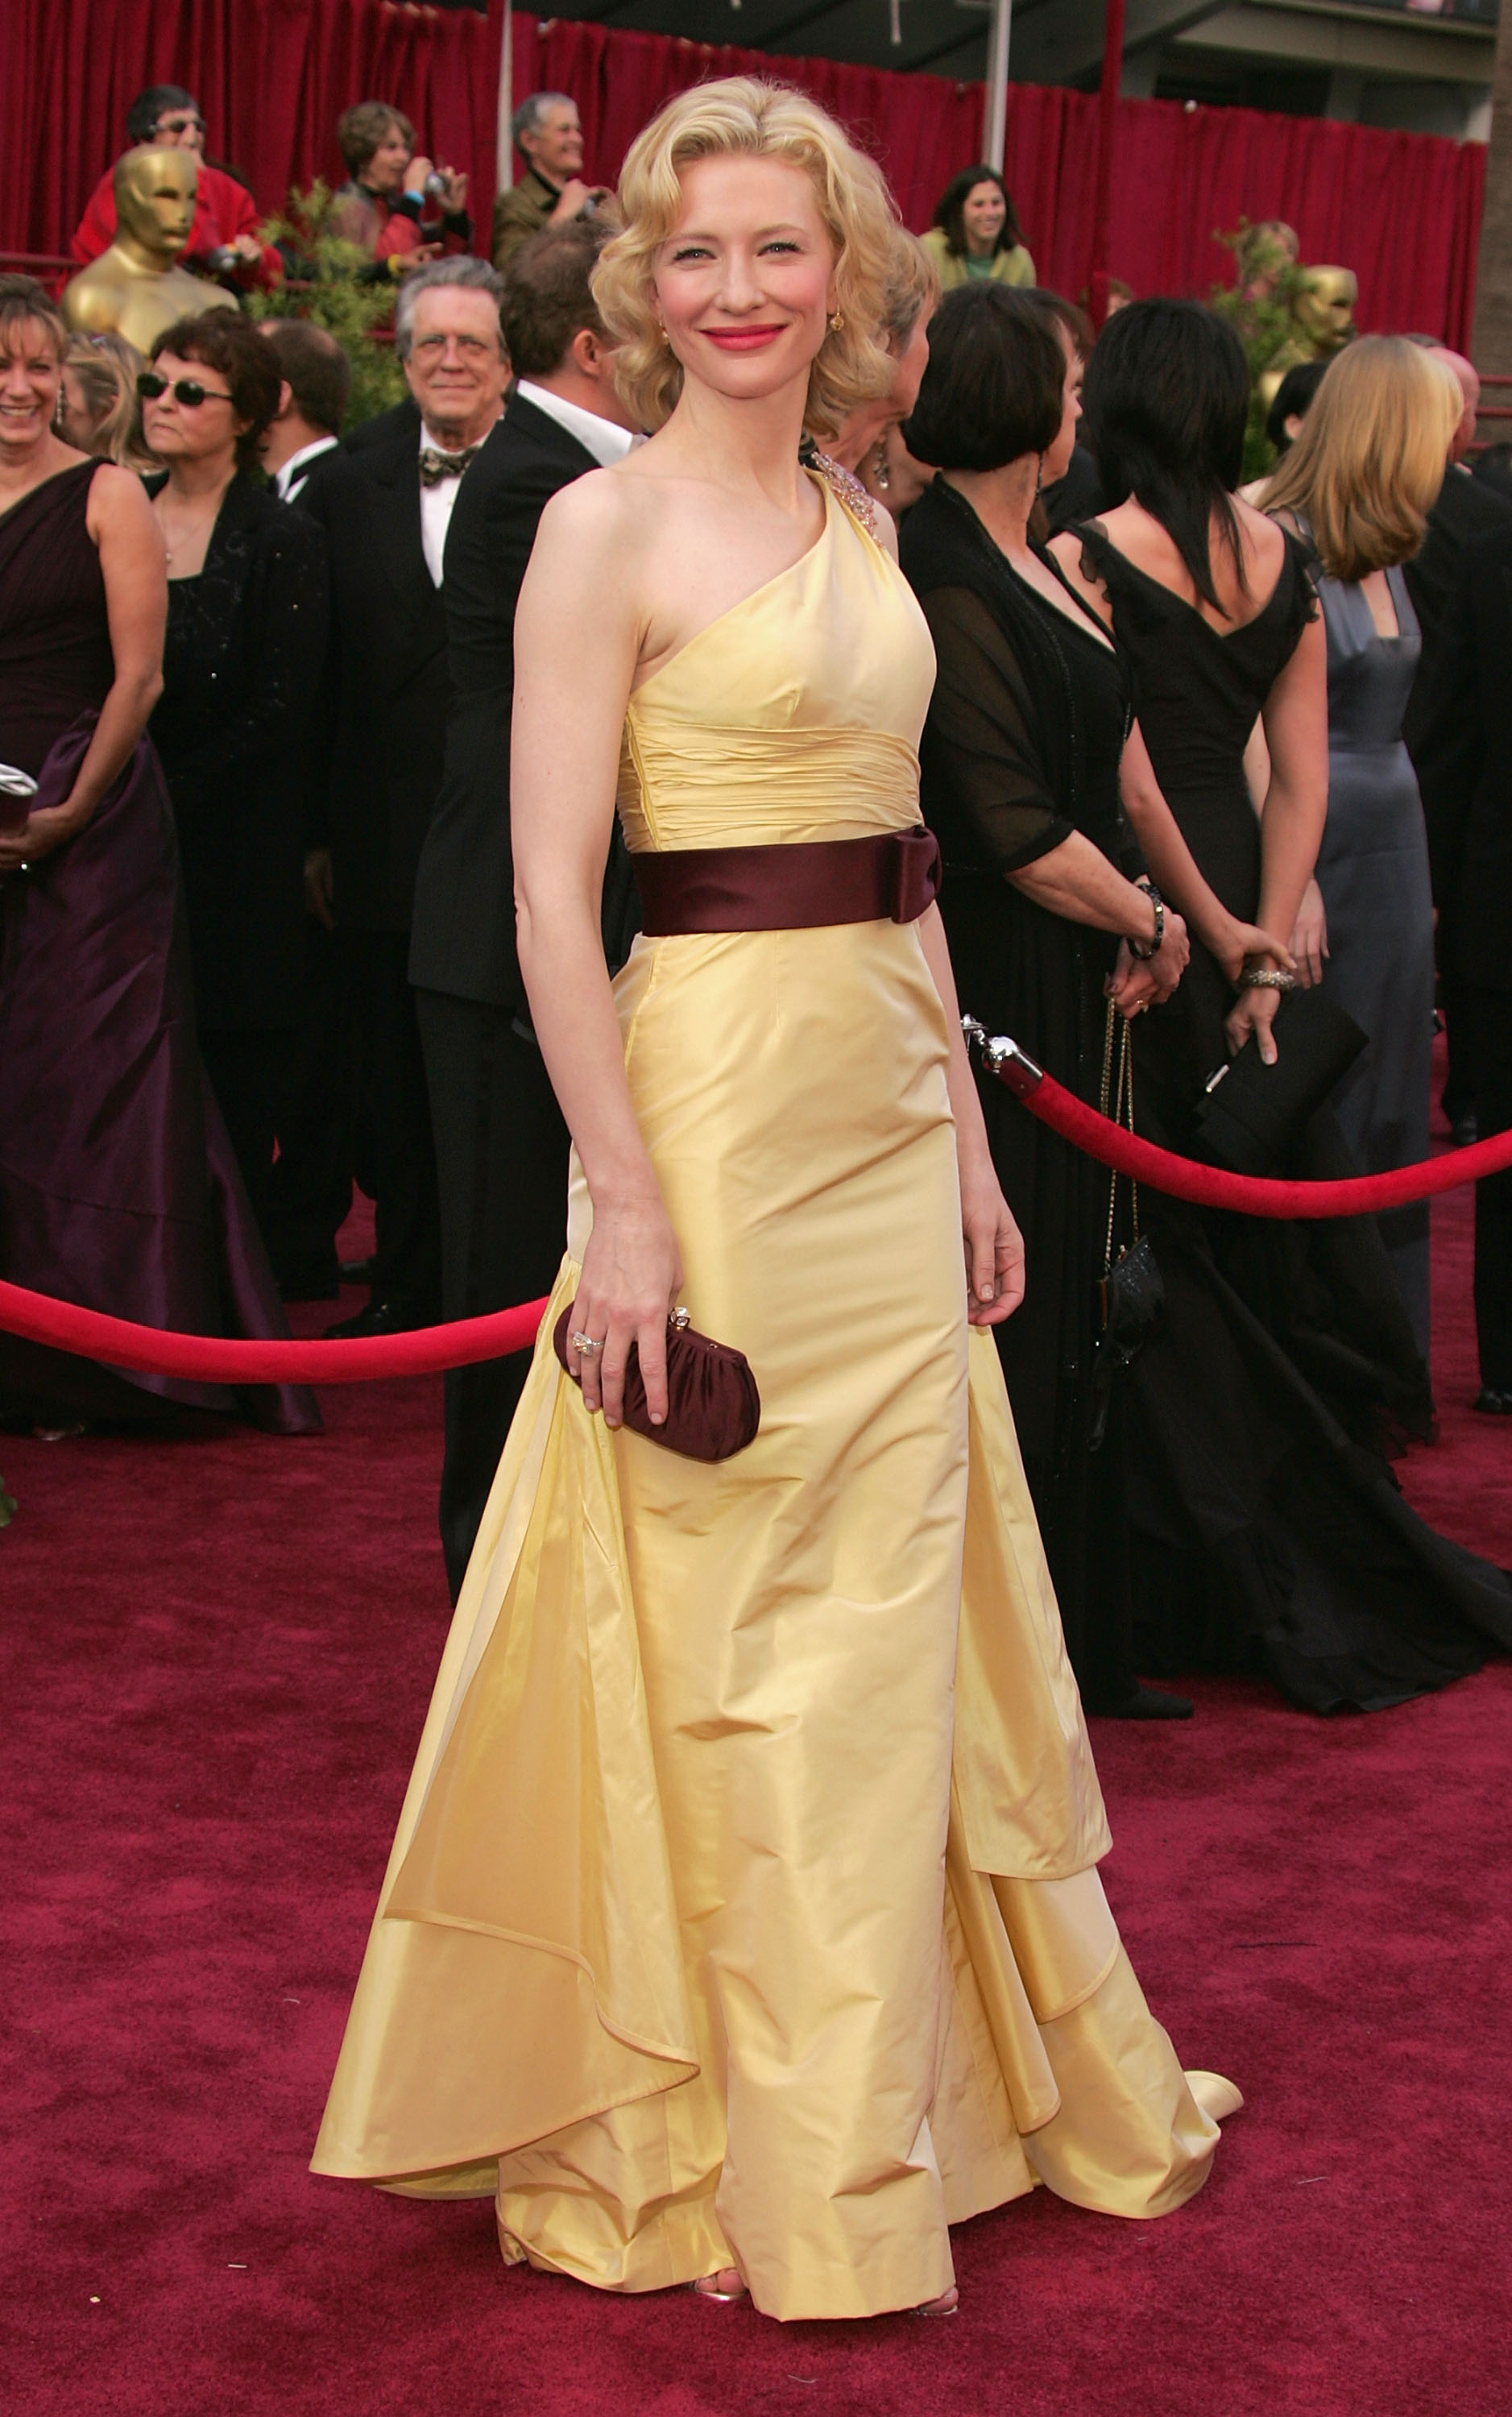 An Image of Cate Blanchett at the 2005 Oscars